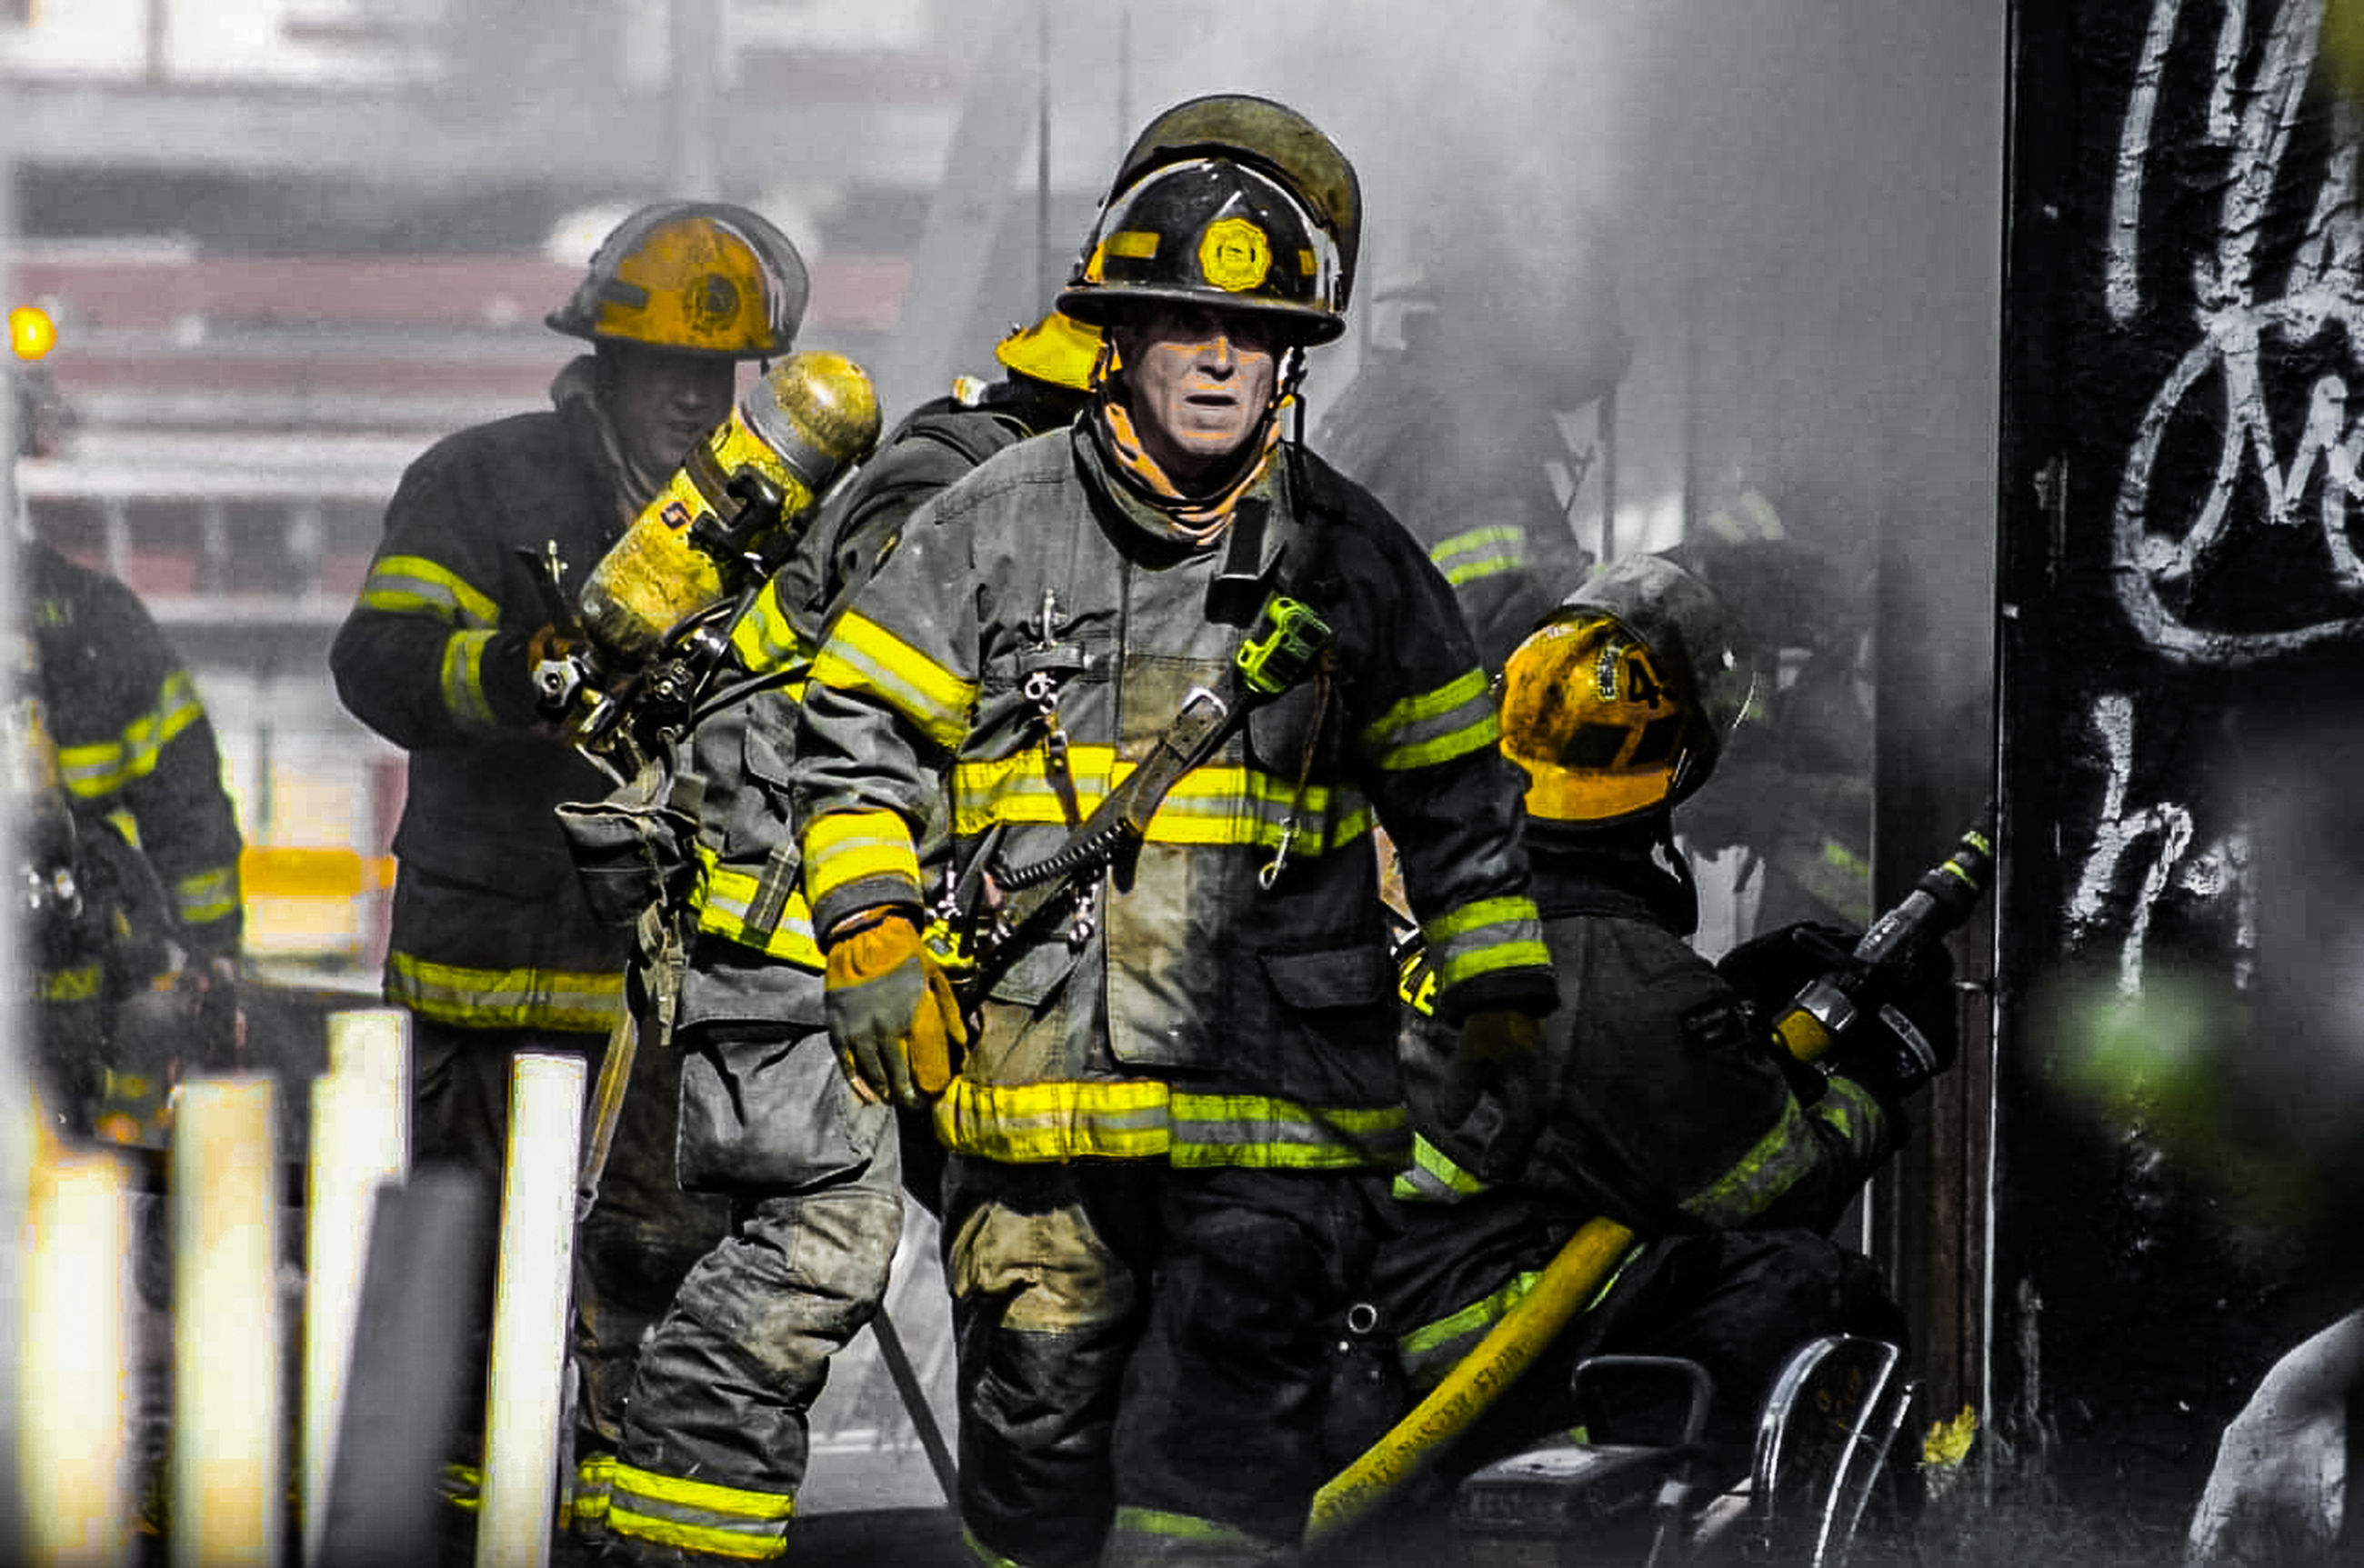 firefighter, accidents and disasters, headwear, clothing, occupation, sign, protection, rescue worker, adult, fire, men, emergency services occupation, communication, protective workwear, warning sign, helmet, burning, sports, cooperation, healthcare and medicine, risk, extinguishing, person, emergency equipment, security, fire hose, teamwork, hose, courage, two people, rescue, uniform, equipment, smoke, standing, day, outdoors, emergency service, spraying